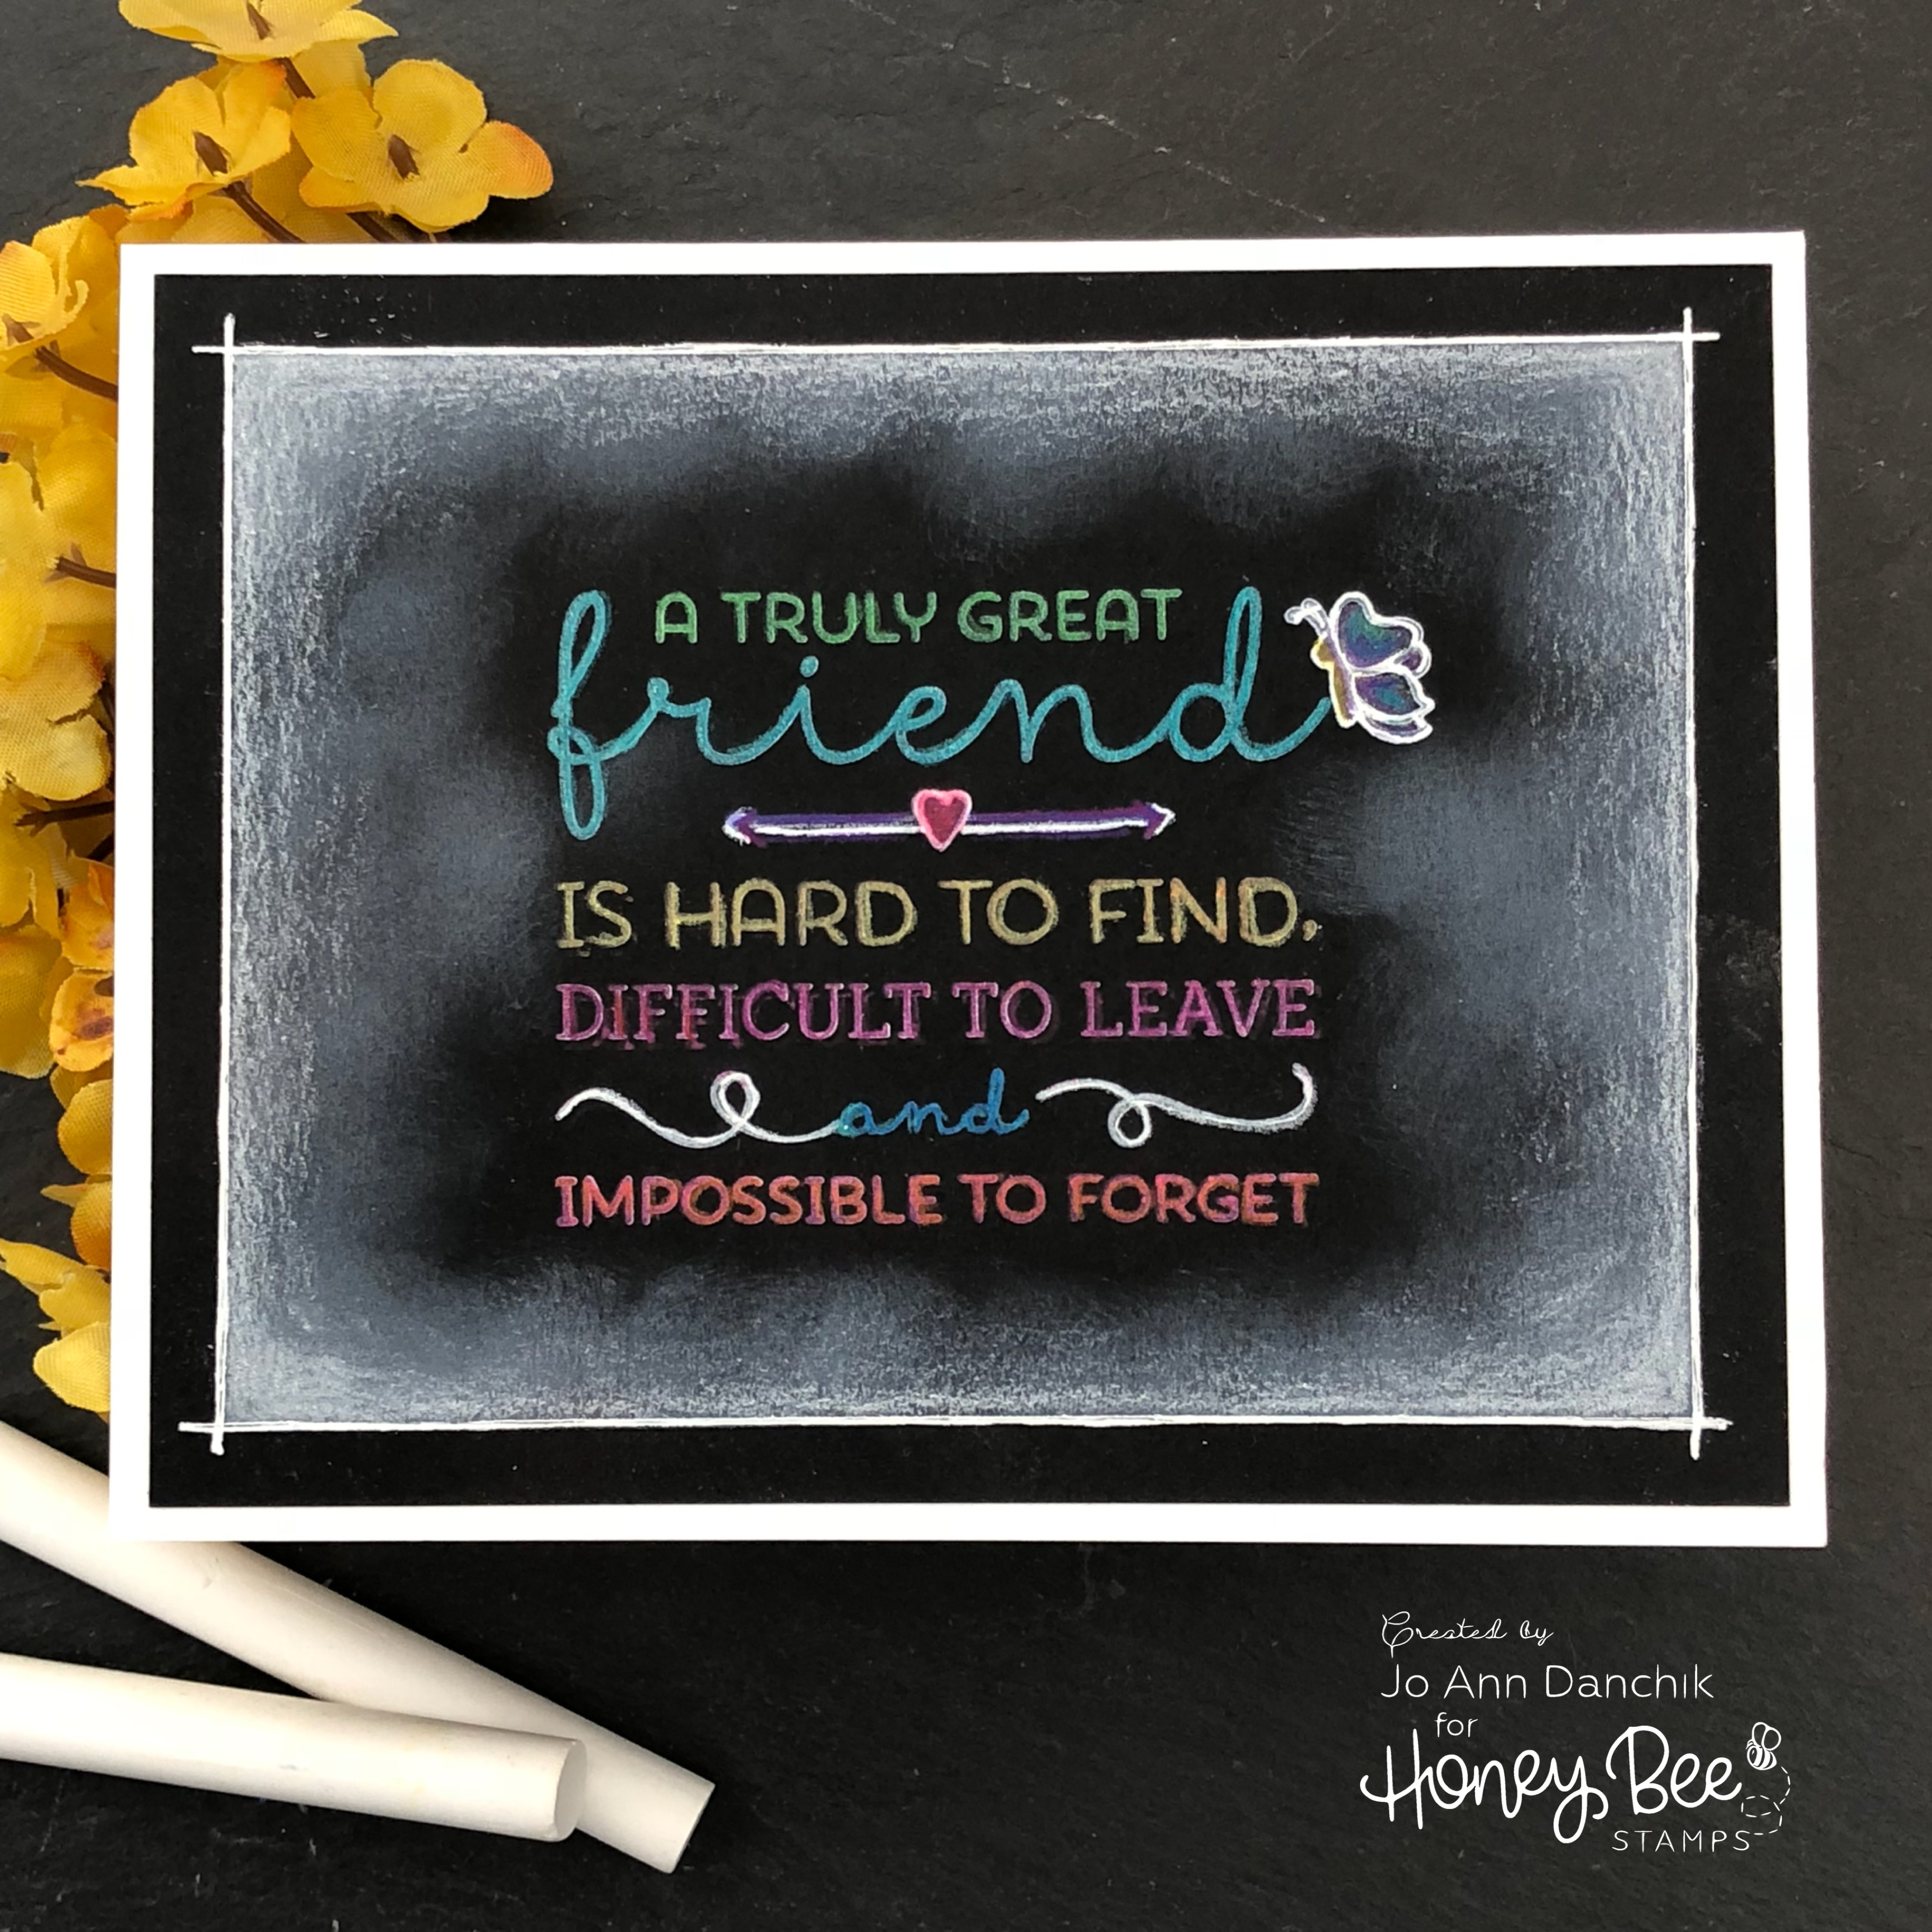 Creative Sundays With Jo Ann: Faux Chalkboard-Truly Great Friends